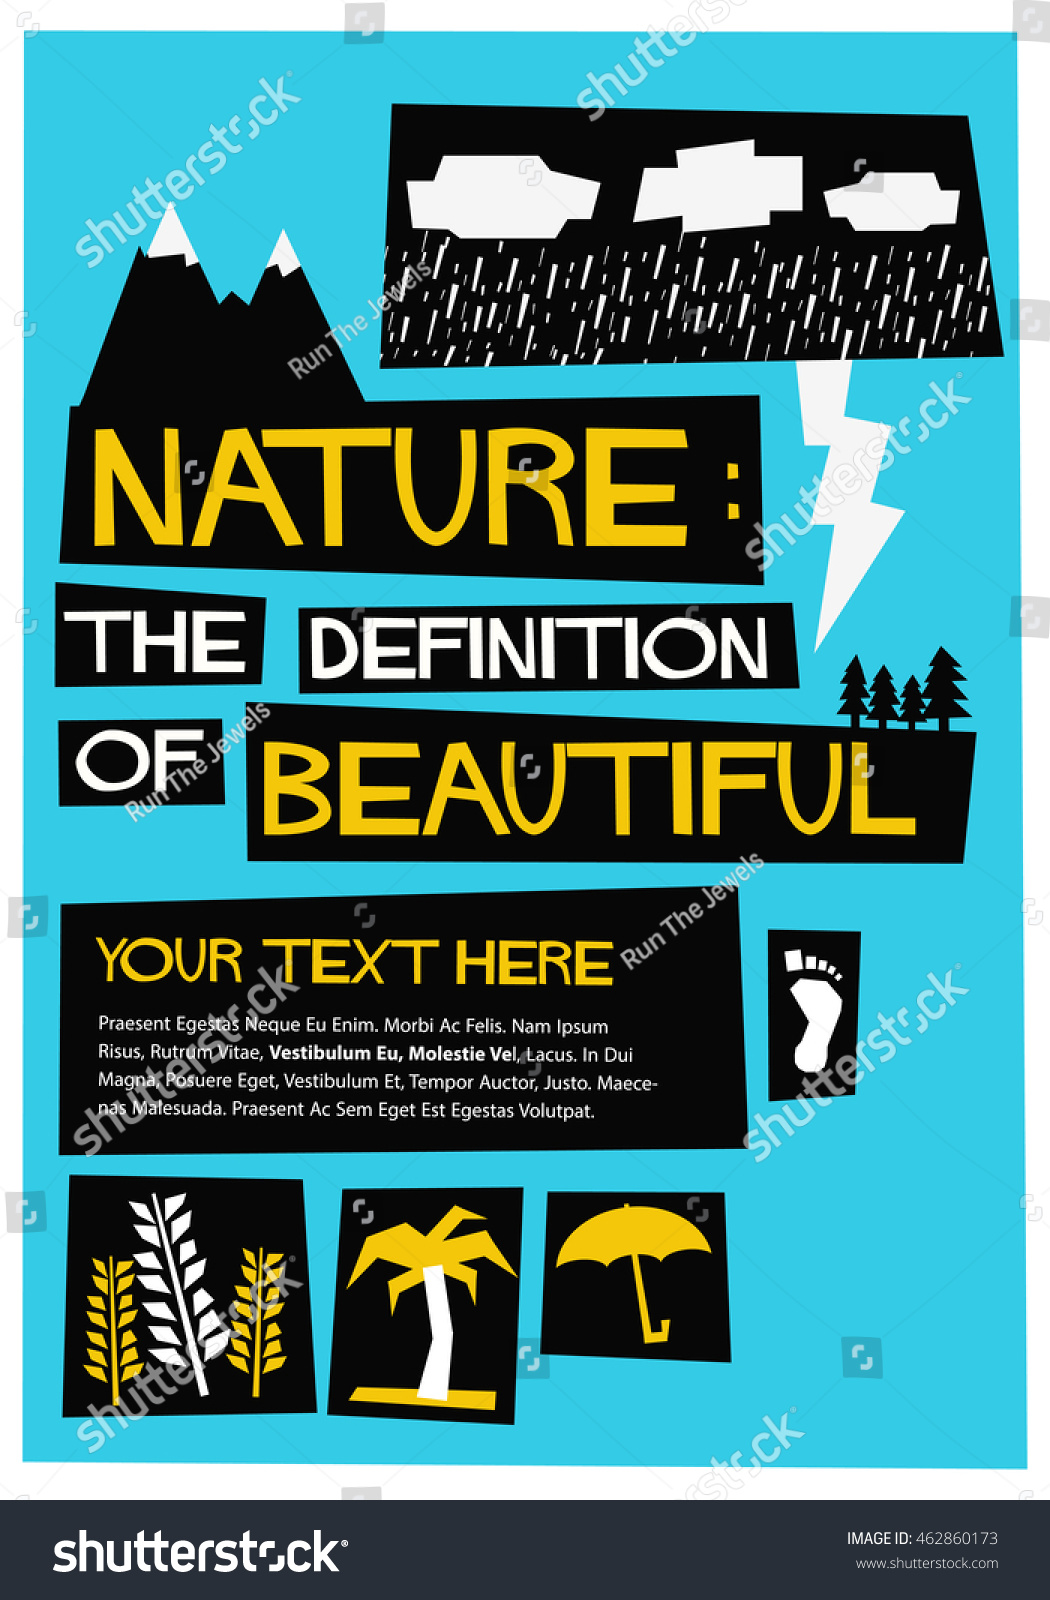 Definition of a poster design - Nature The Definition Of Beautiful Flat Style Vector Illustration Quote Poster Design